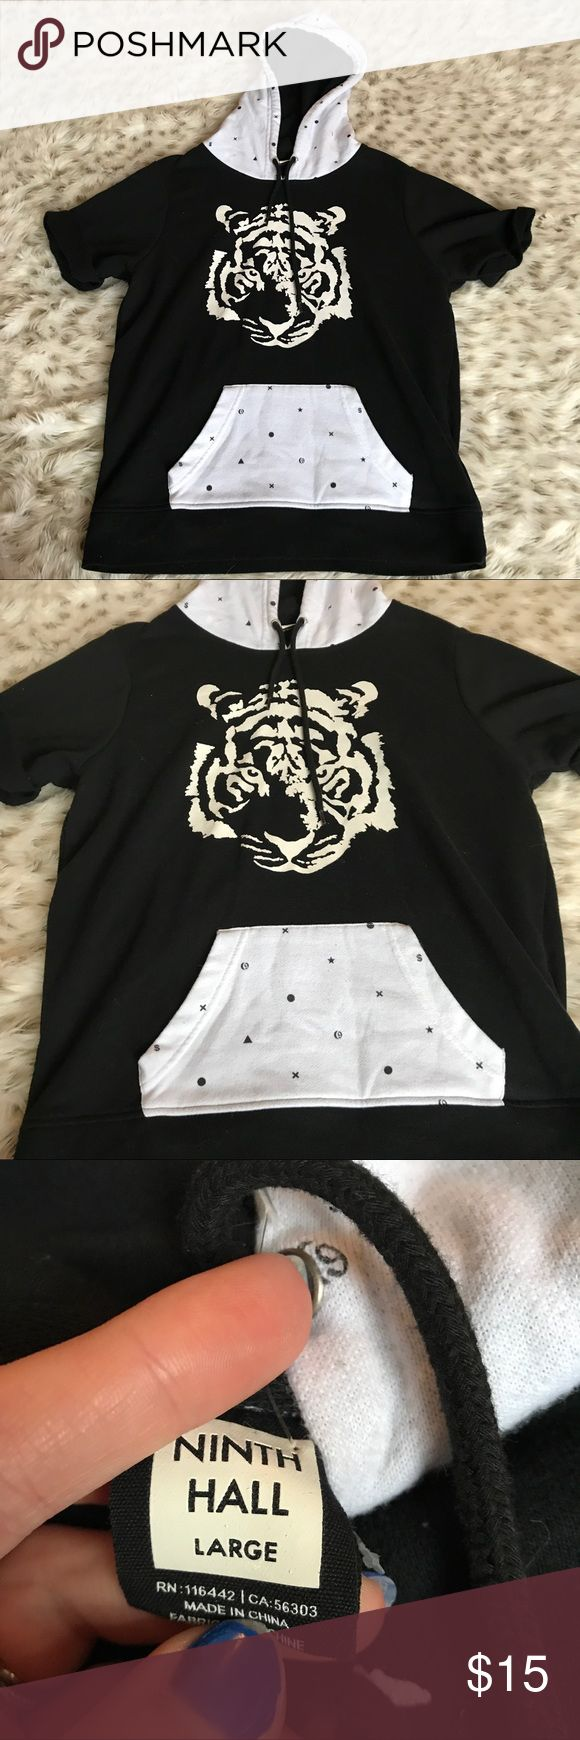 Ninth hall short sleeve Hoodie Tiger Ninth hall black and white short sleeve hoodie. Size large. Tiger on the front. Printed hood. Has some piling. Overall good condition! ninth hall Shirts